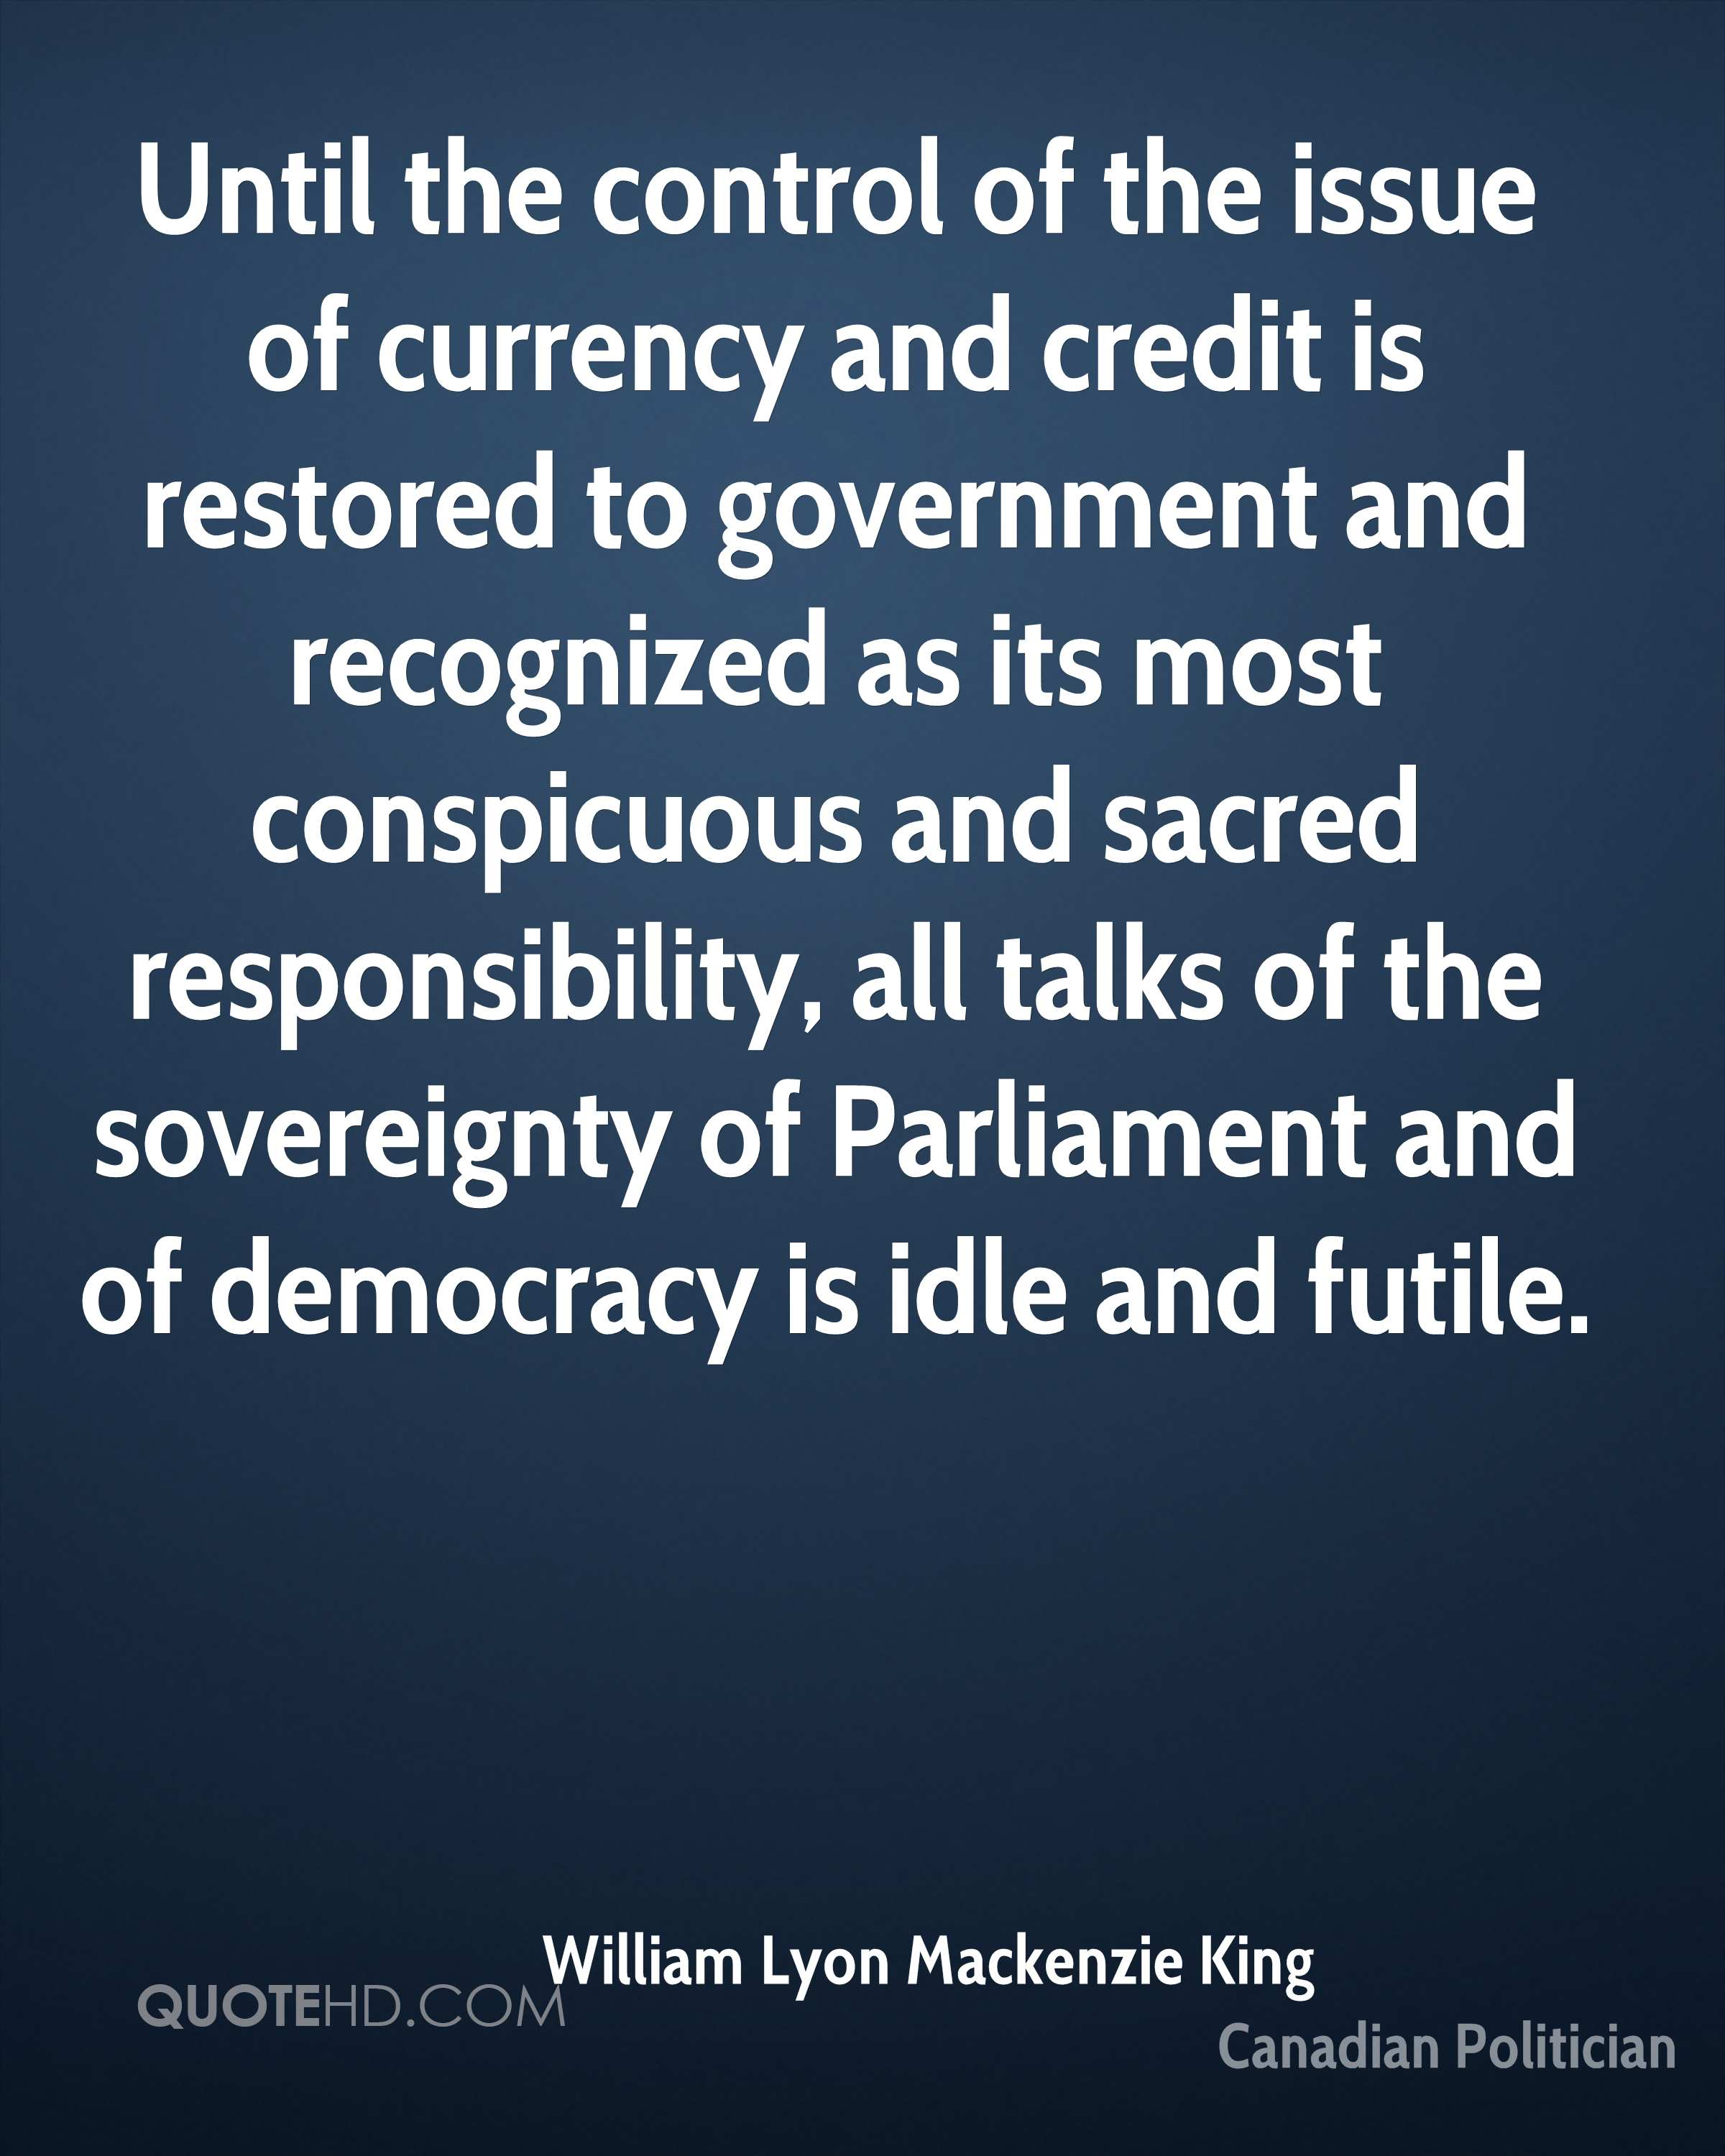 Until the control of the issue of currency and credit is restored to government and recognized as its most conspicuous and sacred responsibility, all talks of the sovereignty of Parliament and of democracy is idle and futile.